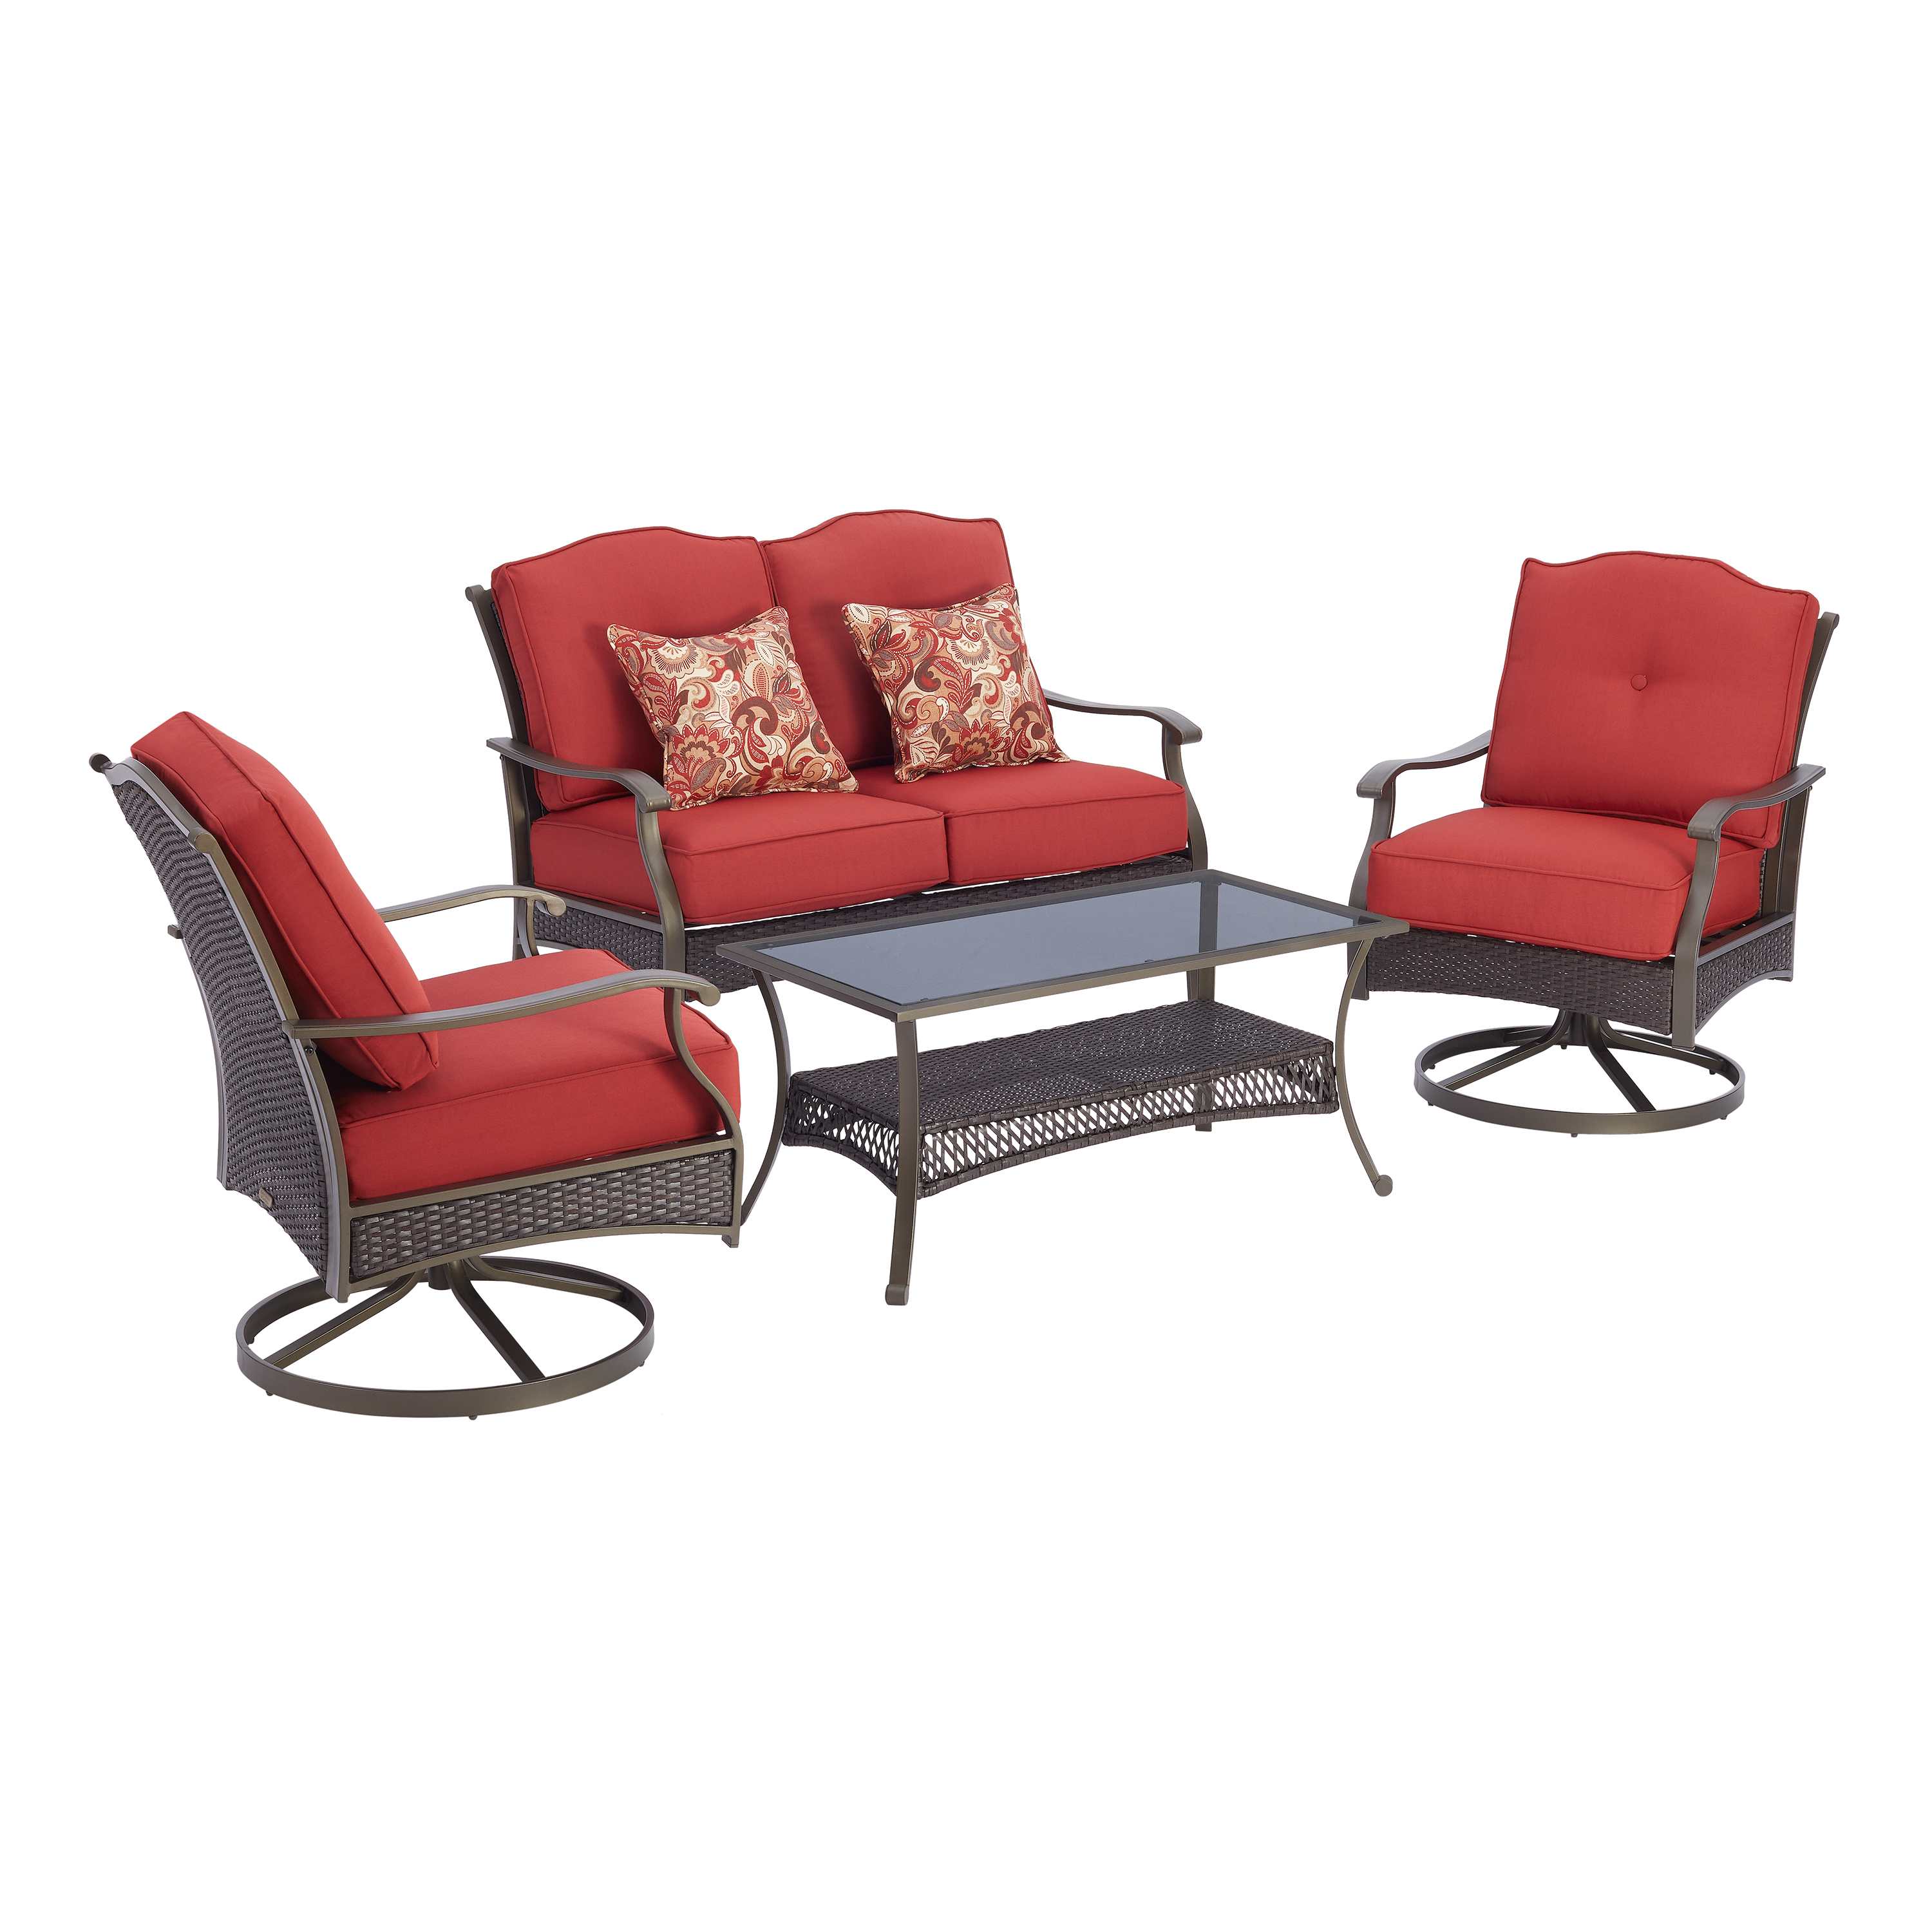 Patio Furniture Set 4 Piece Outdoor Table And Chairs With Sofa Seating Sets Red Ebay